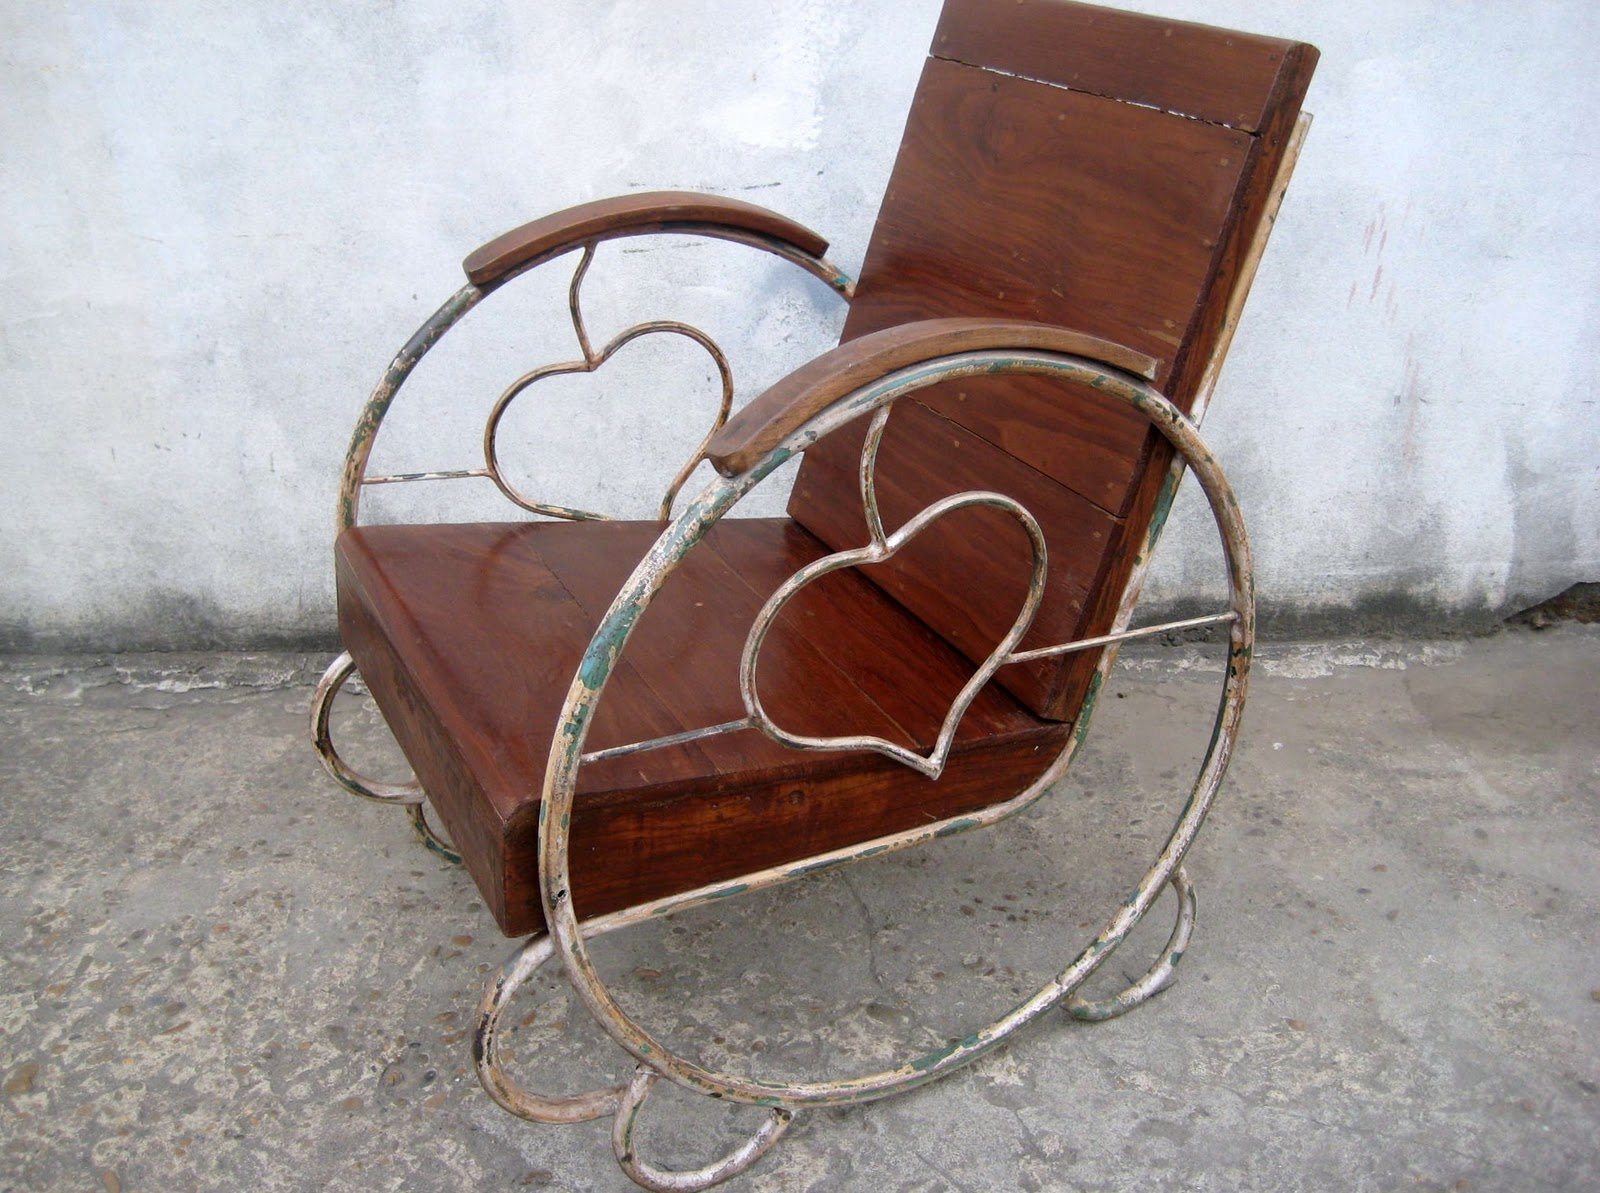 veranda chair design baby travel high style imports vintage chairs